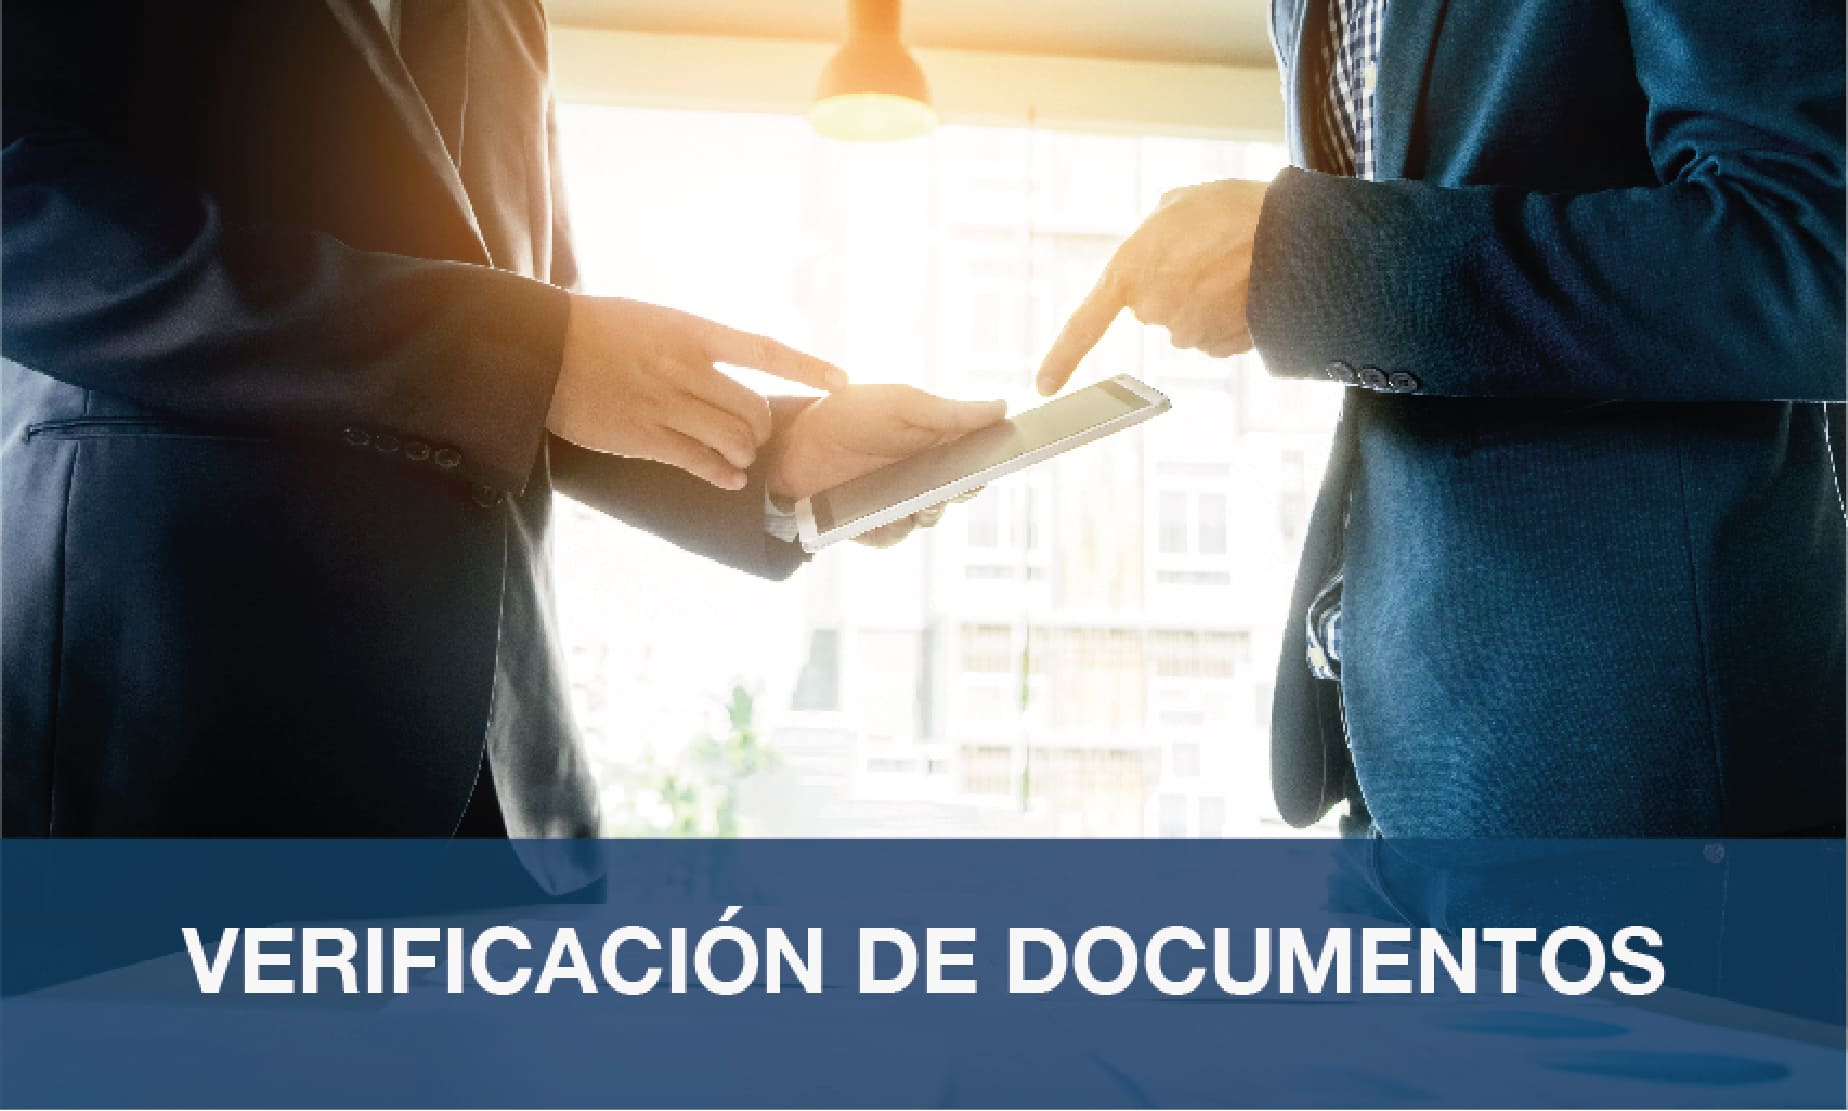 Verificacion de documentos